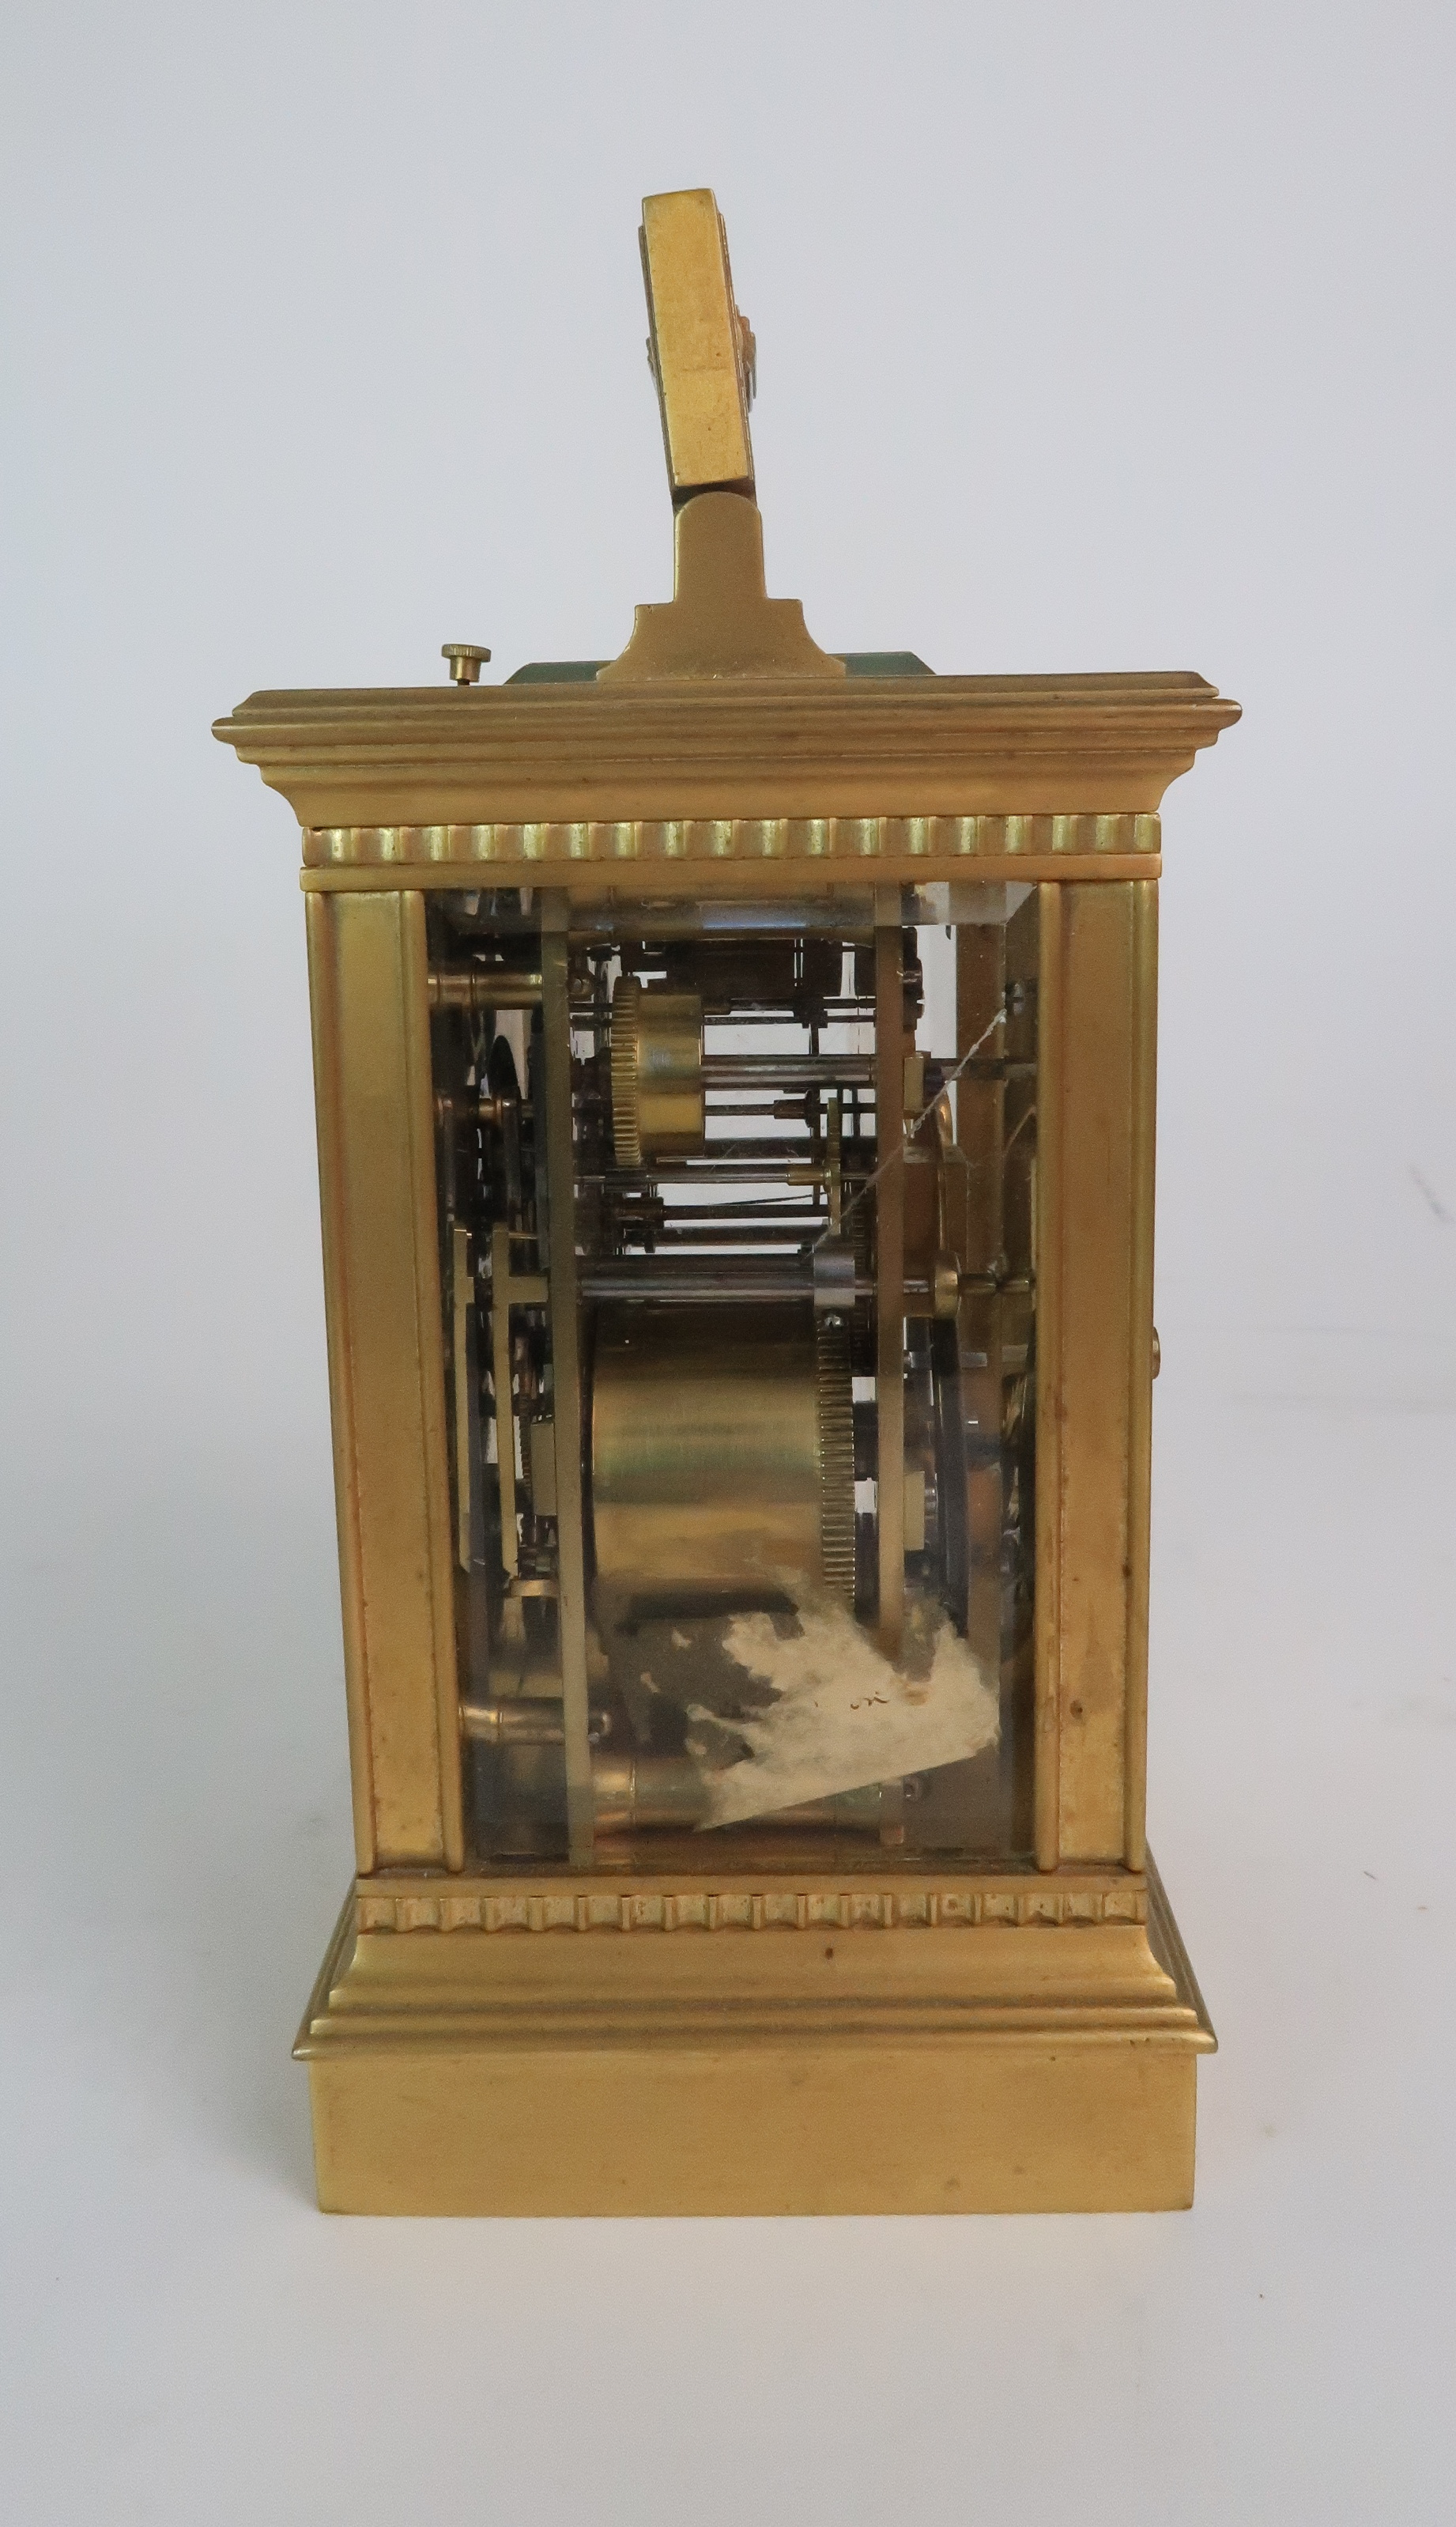 A FRENCH BRASS AND GLASS REPEATER CARRIAGE CLOCK the enamel dial with Roman numerals, with - Image 2 of 8